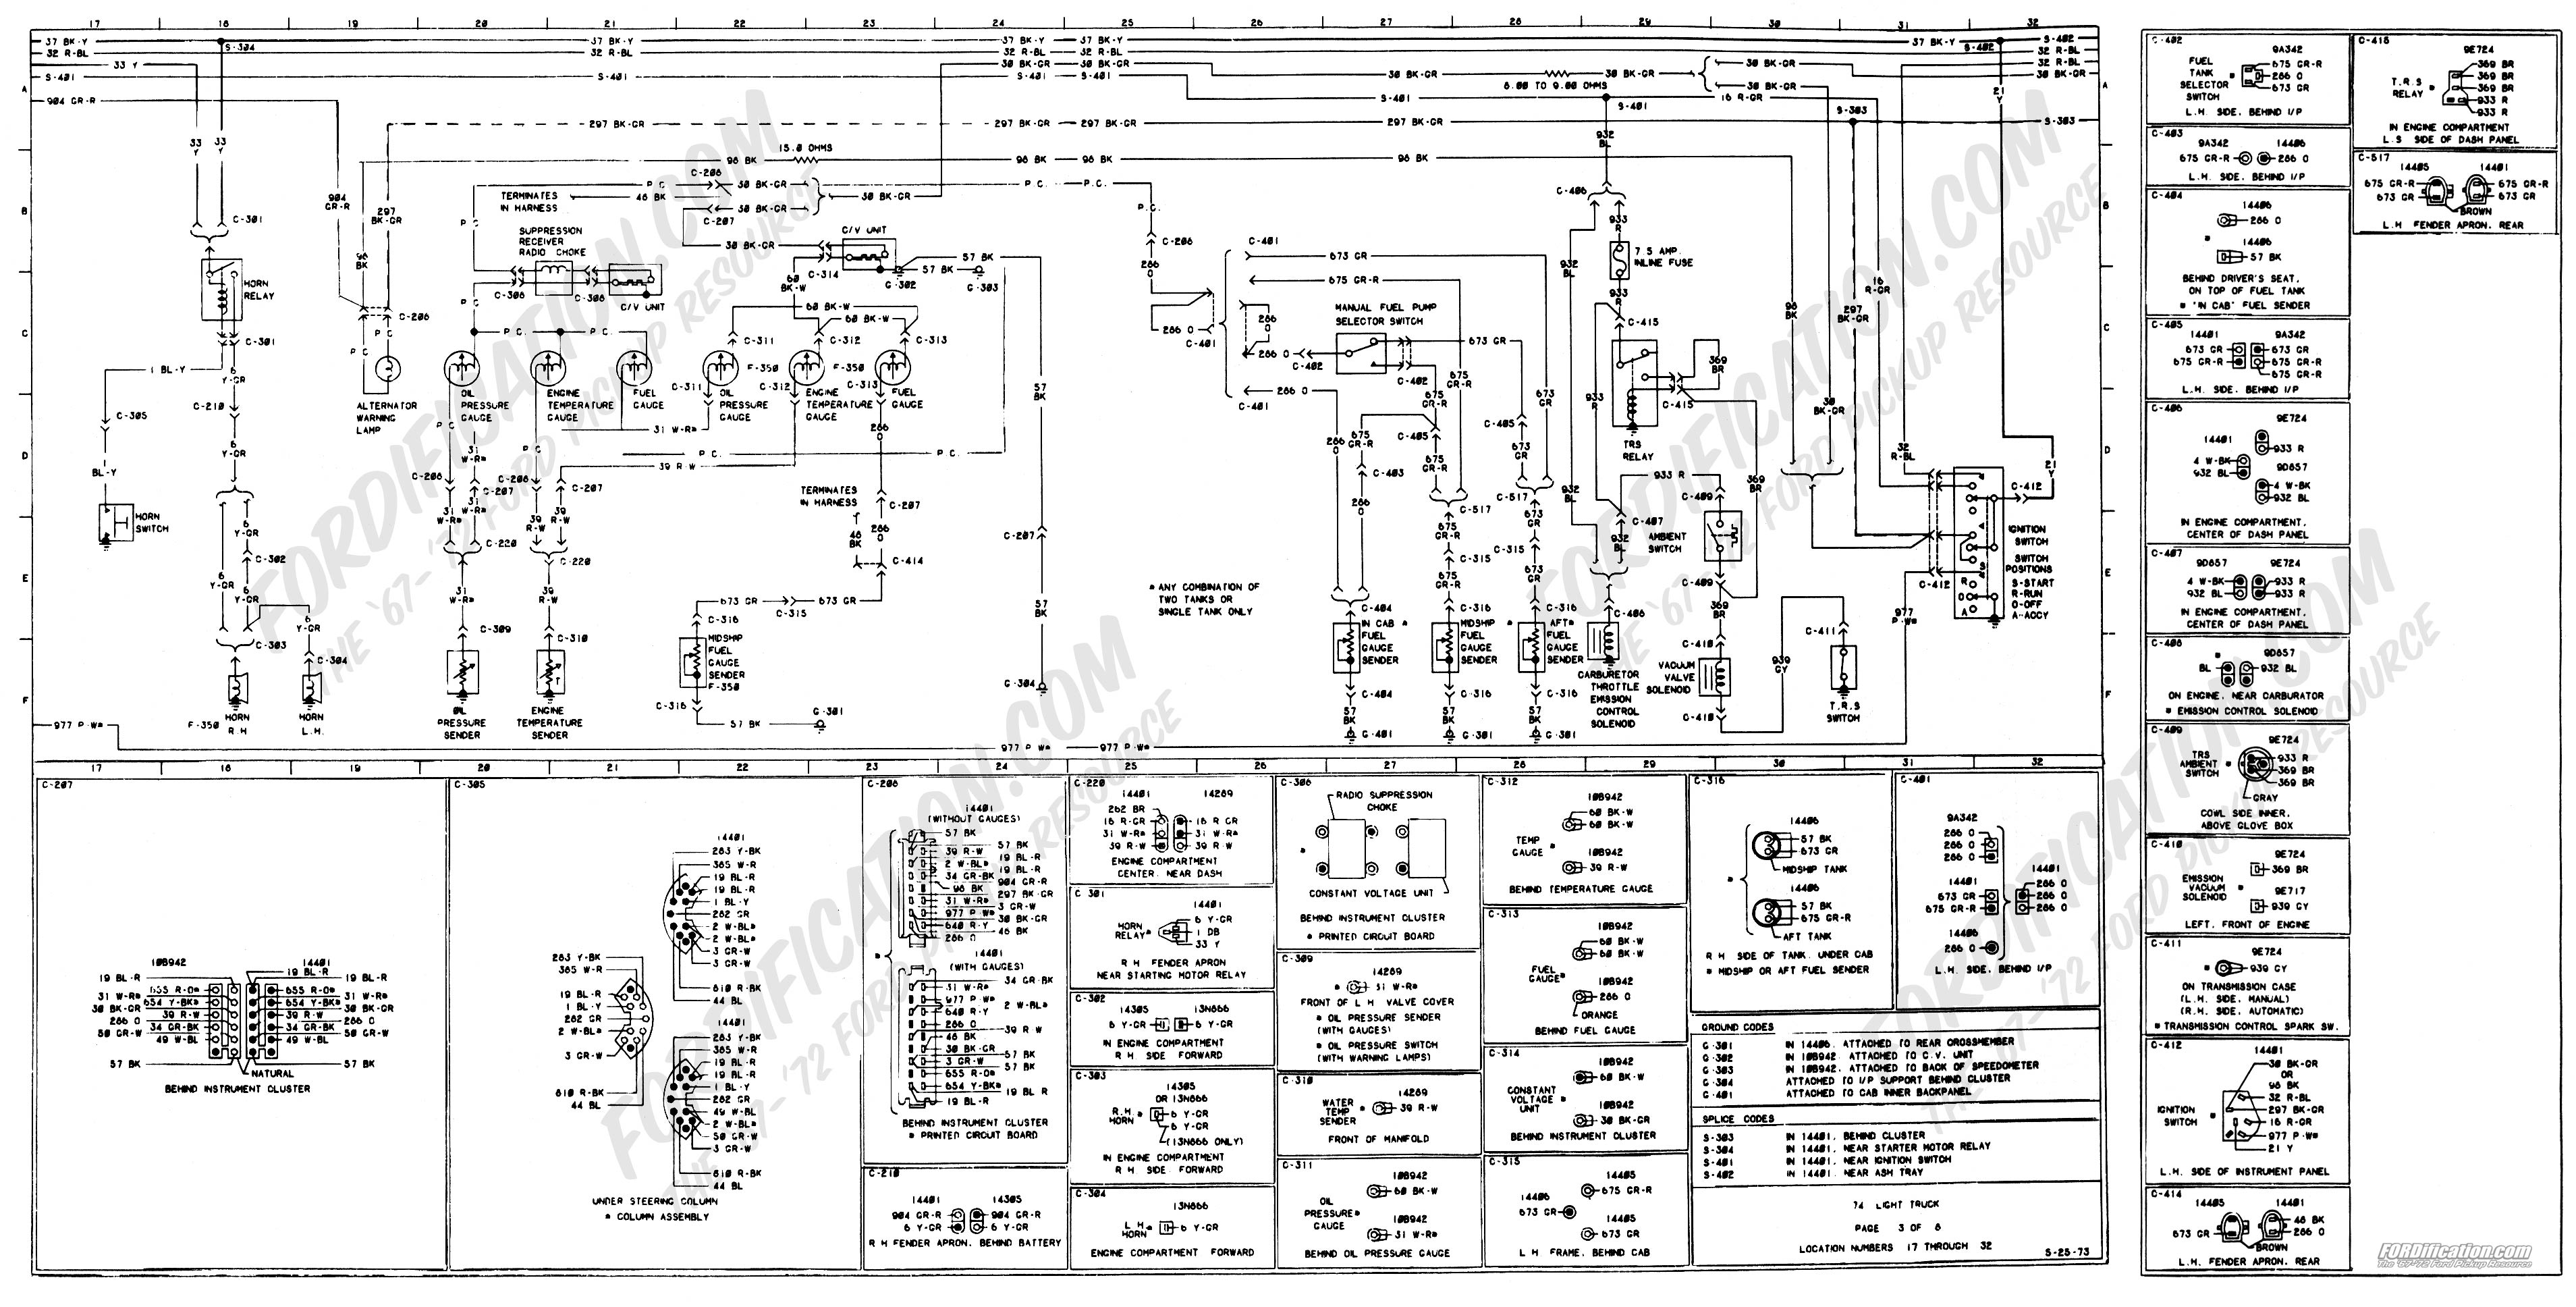 wiring_74master_3of8 1973 1979 ford truck wiring diagrams & schematics fordification net In a 98 Dodge Dakota Wiring Harness at aneh.co